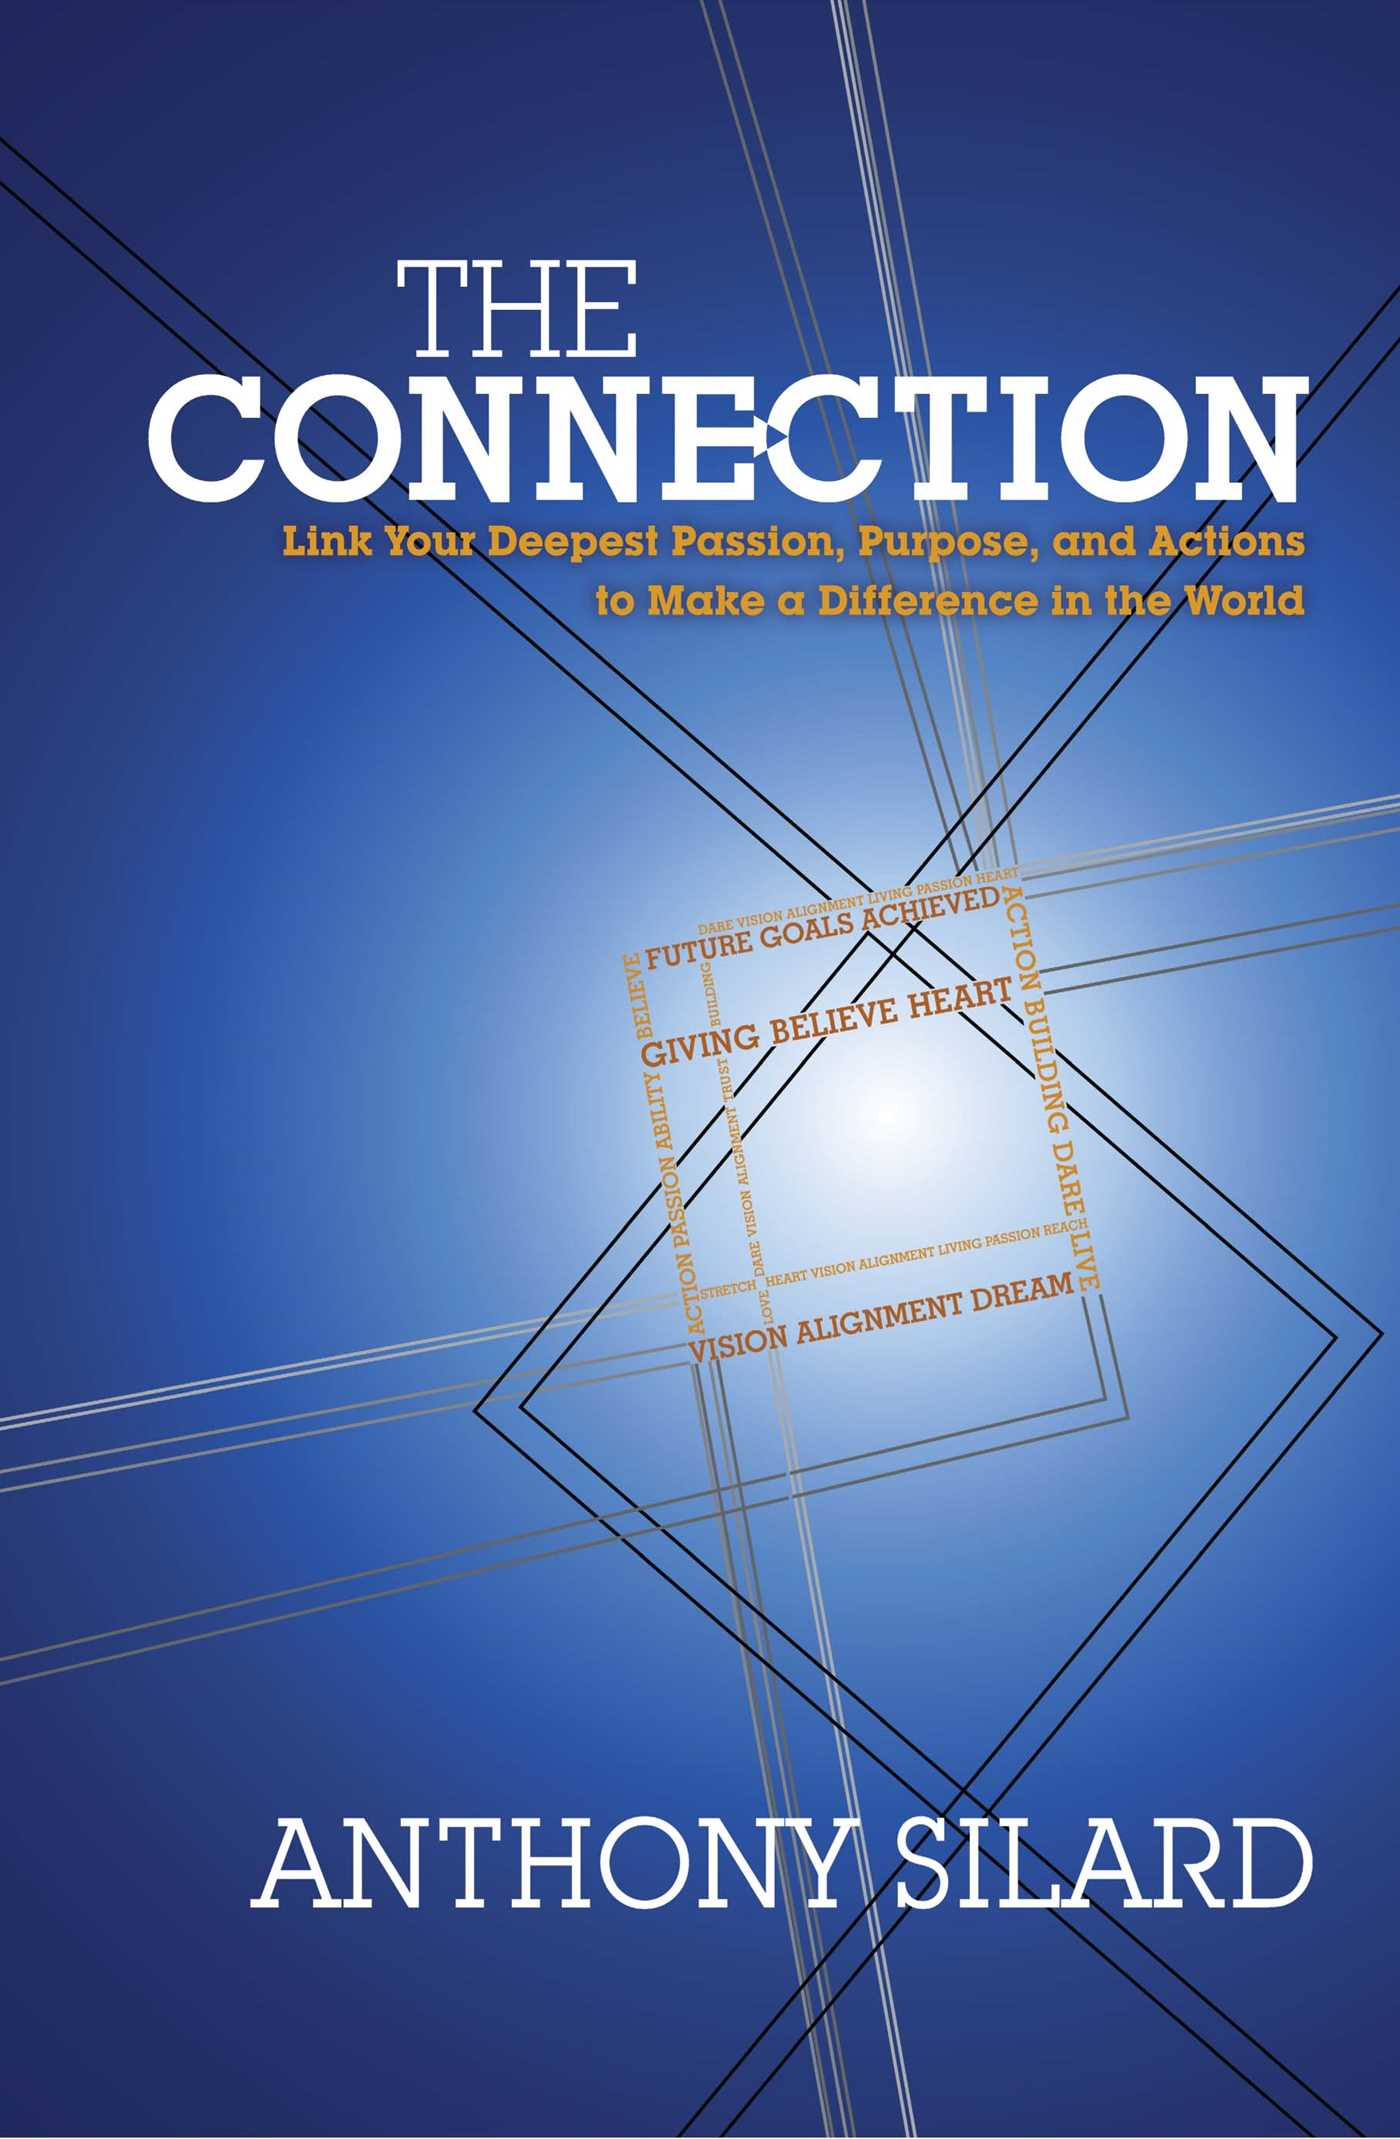 The Connection Book By Anthony Silard Official Publisher Page Electricity In Action Link Your Deepest Passion Purpose And Actions To Make A Difference World